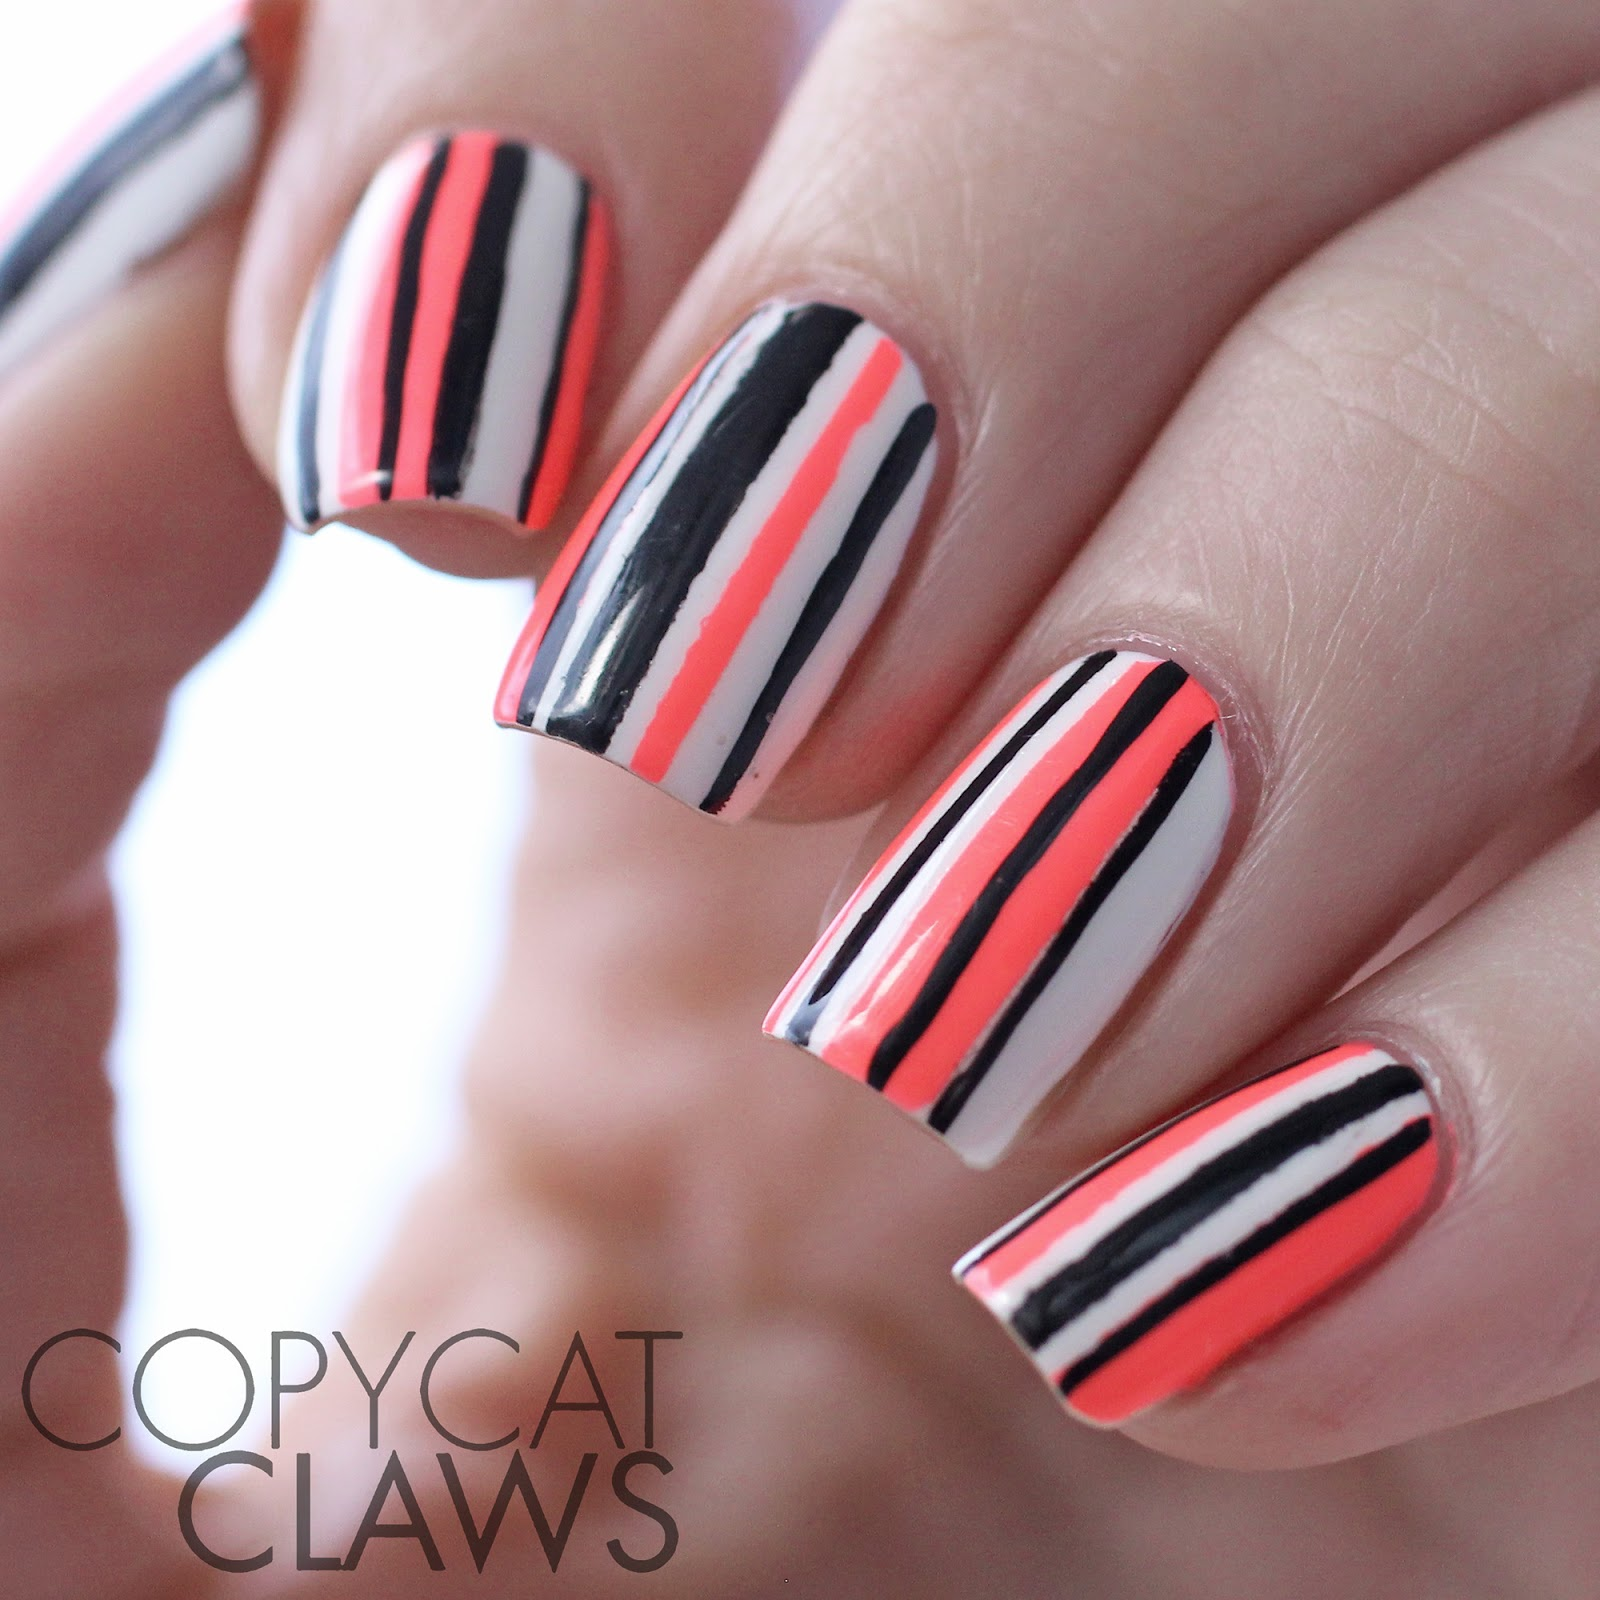 Copycat Claws: Neon Striped Nail Art